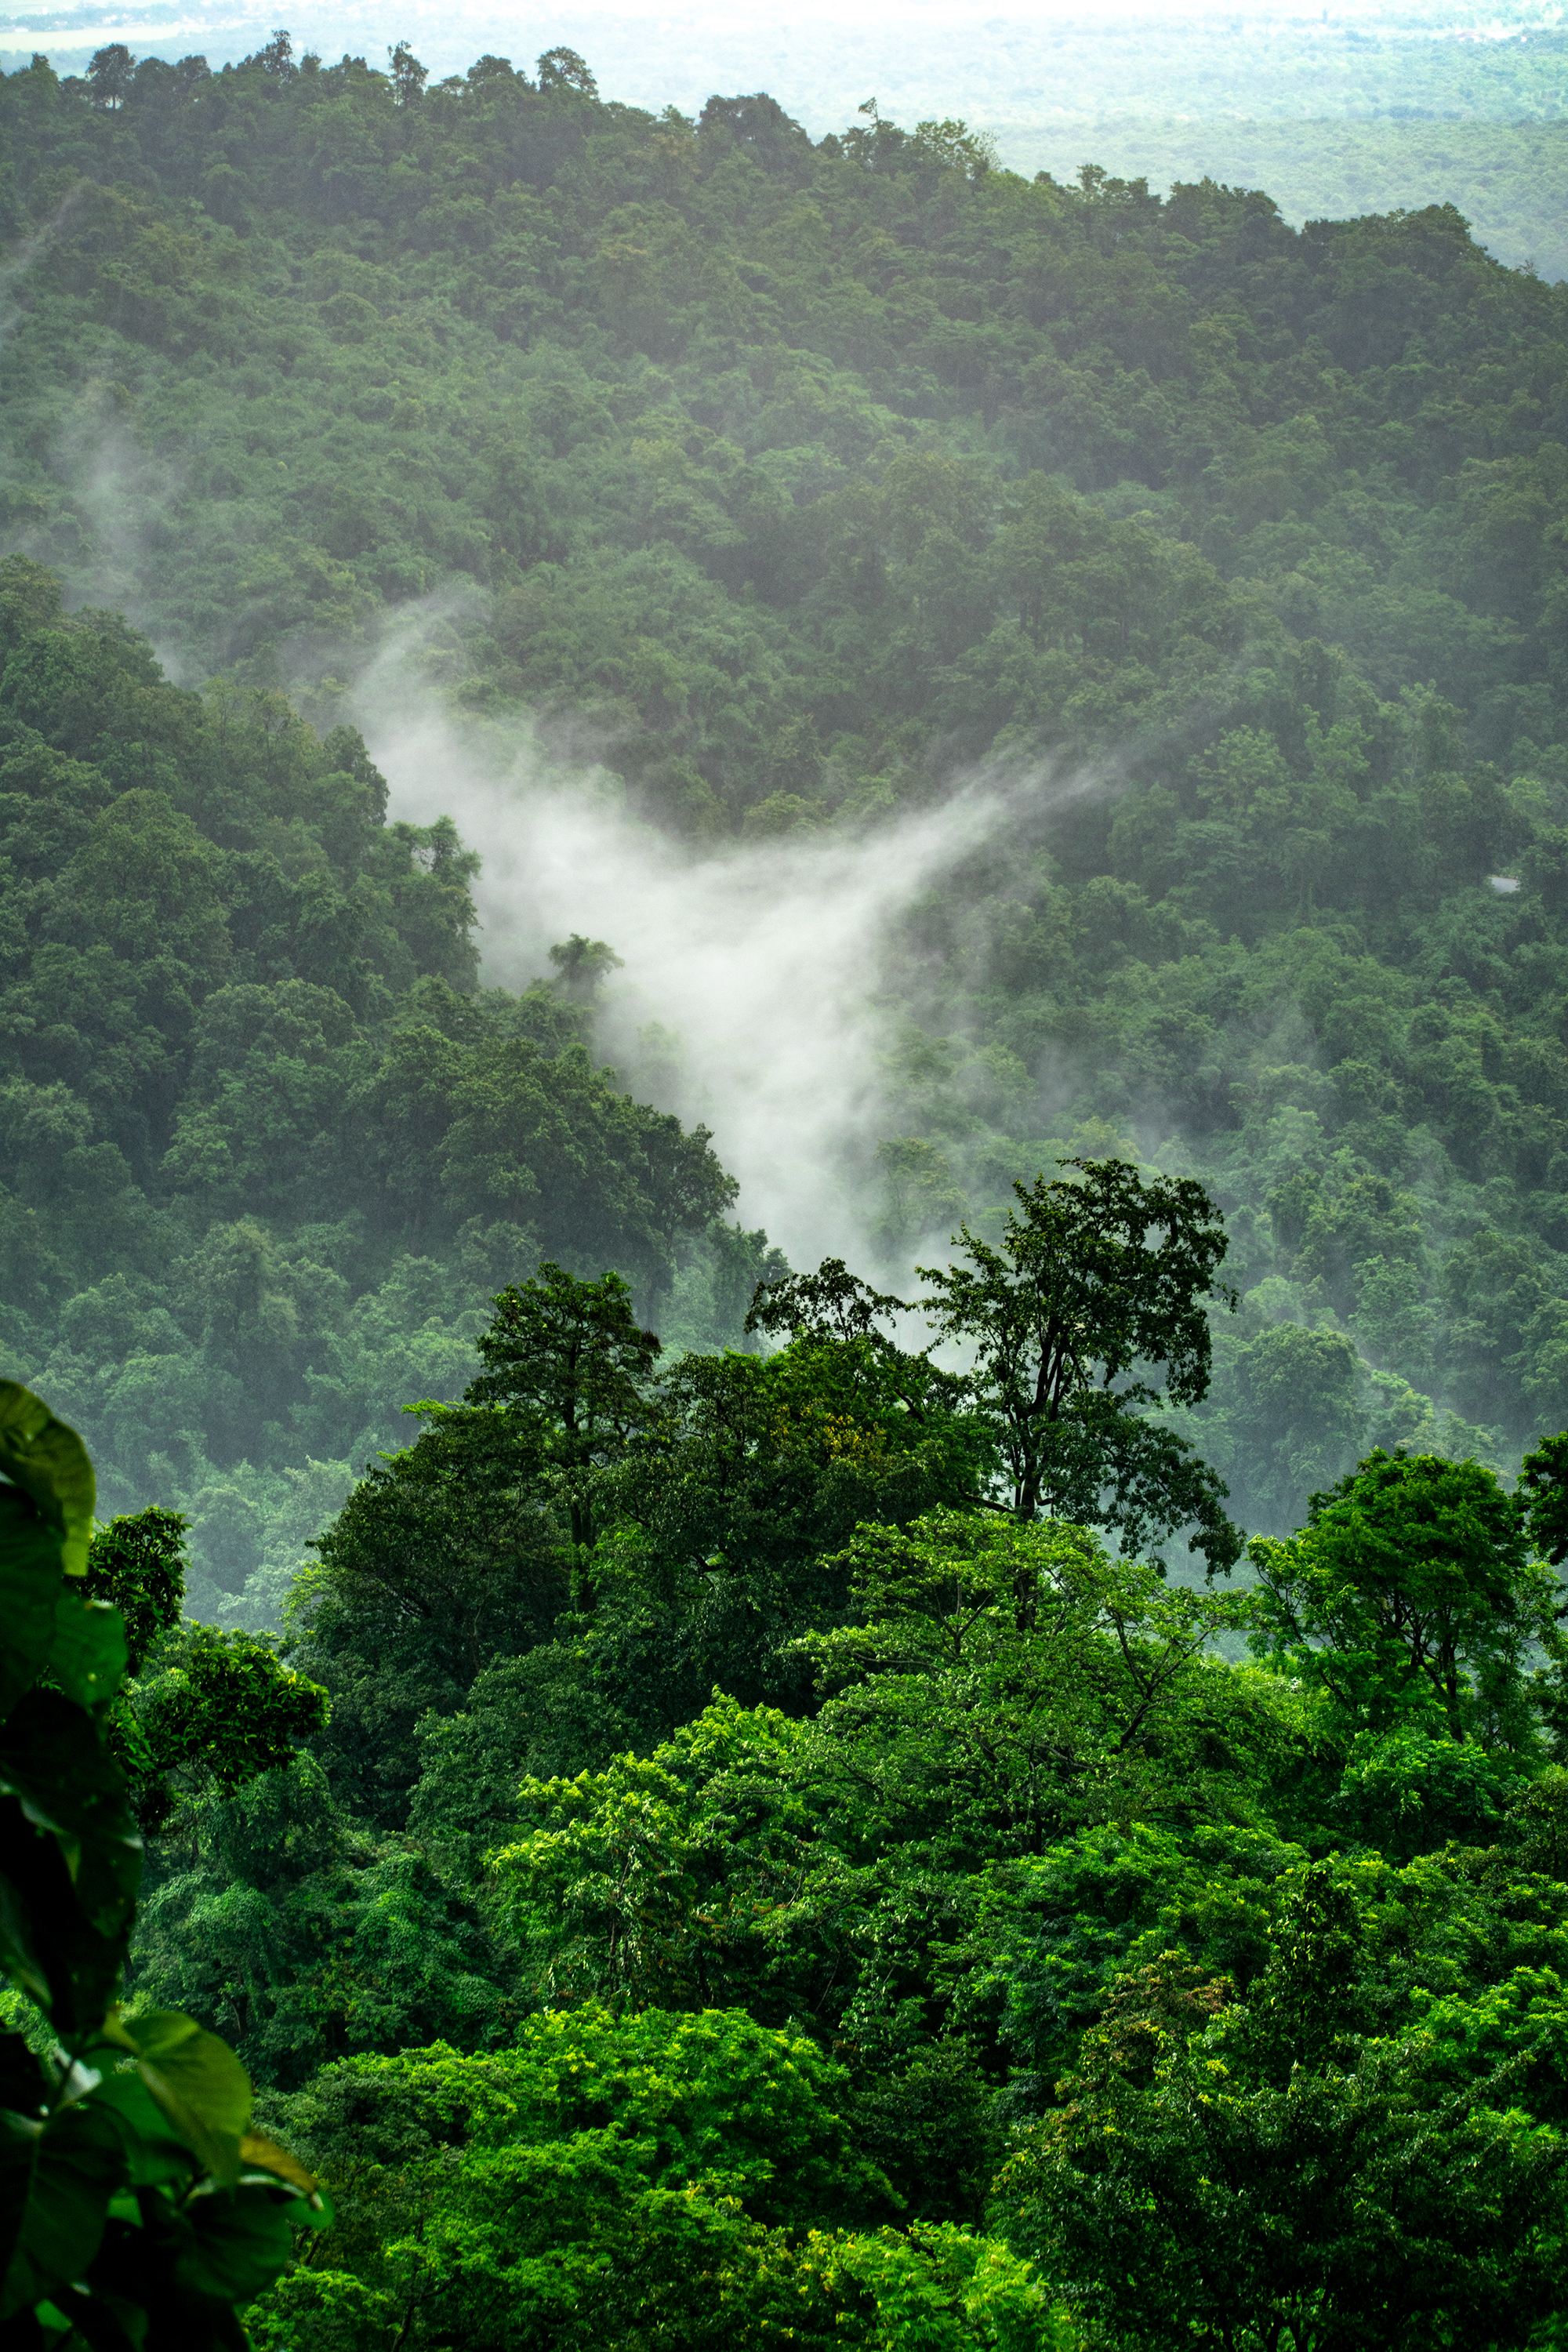 THE AMAZON IS THE LARGEST RAINFOREST -